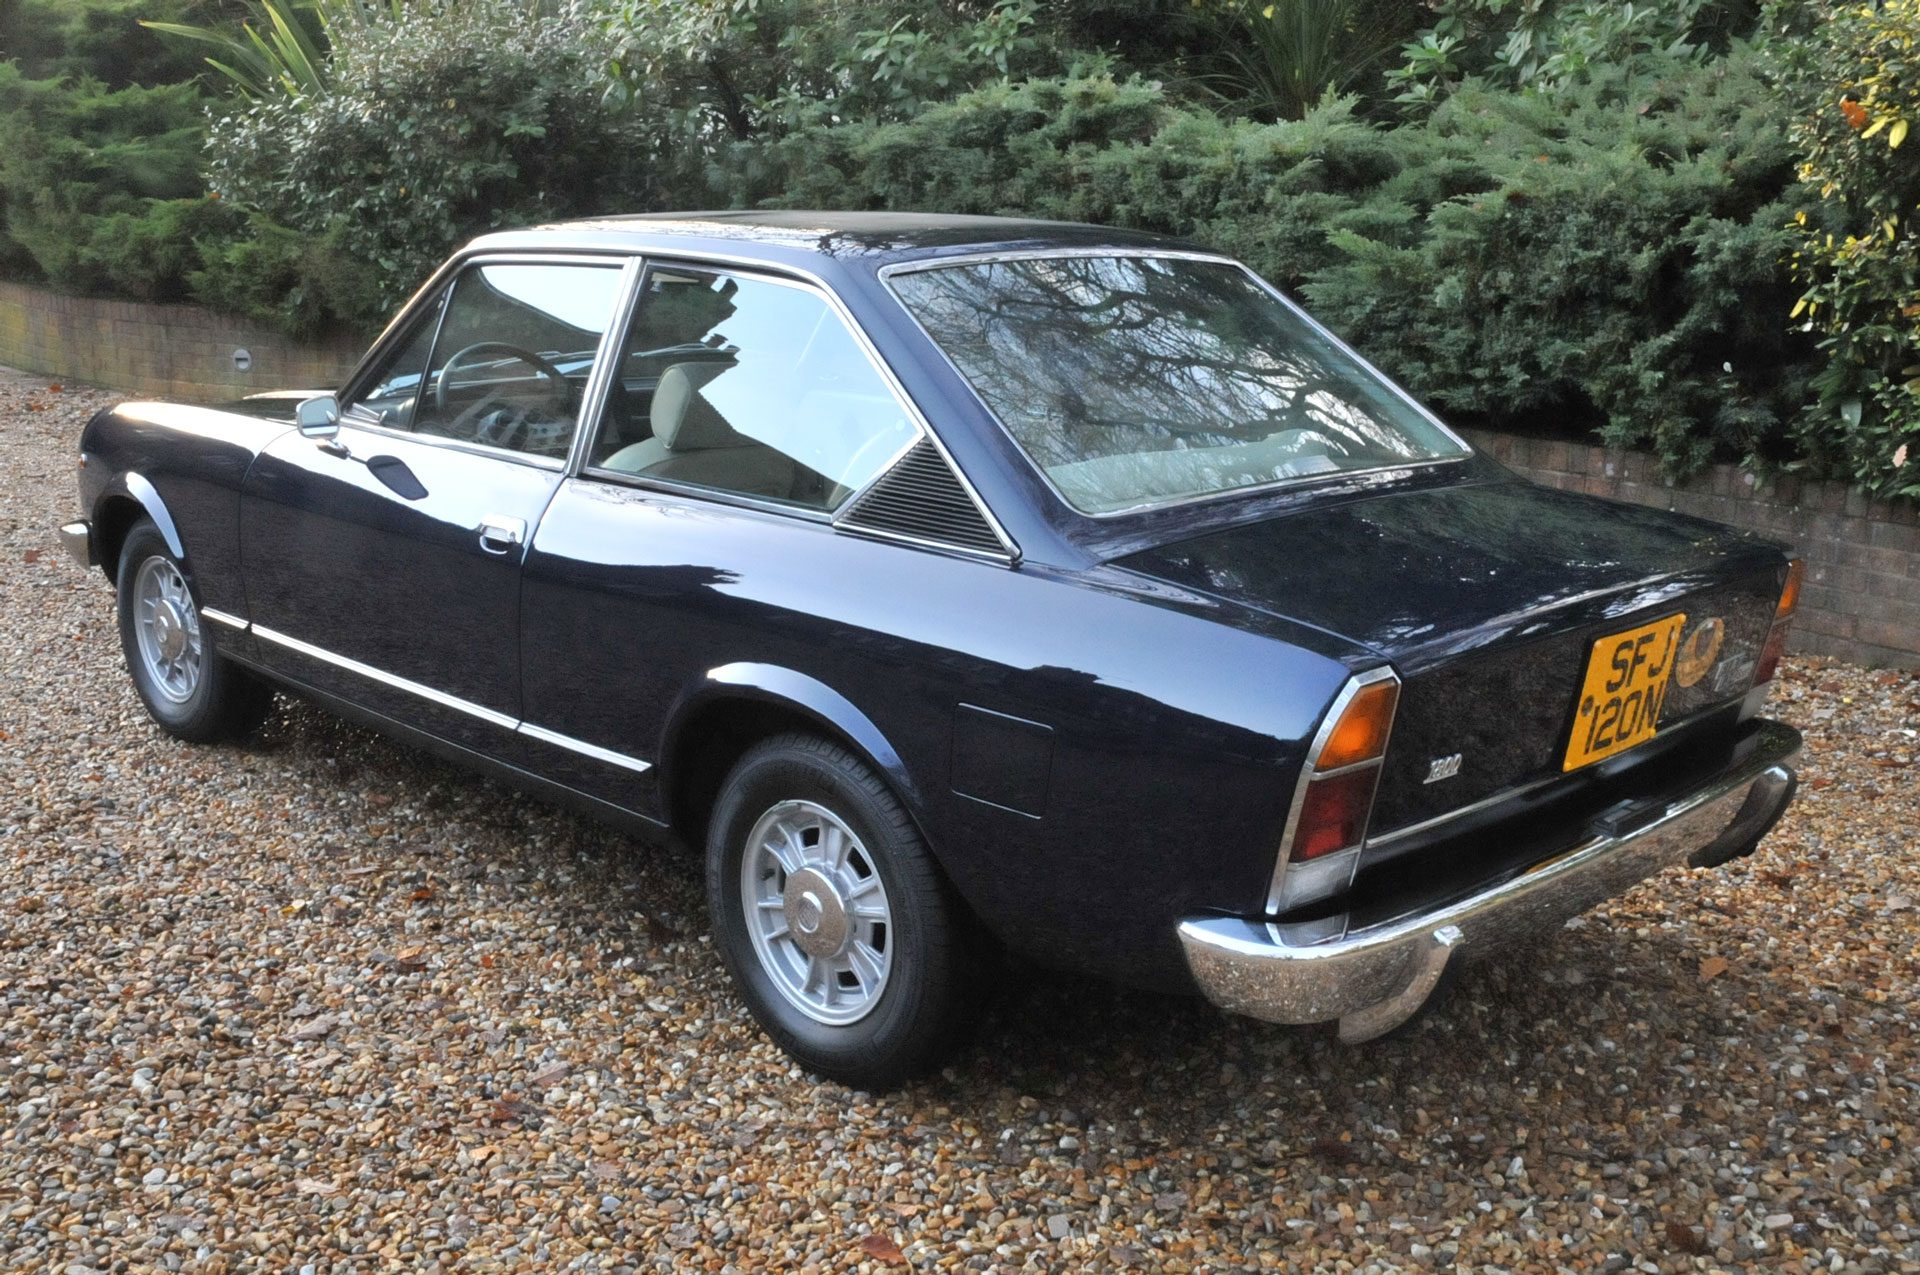 1974 fiat 124 sports coupe 1800 for sale 01420474411 lca. Black Bedroom Furniture Sets. Home Design Ideas